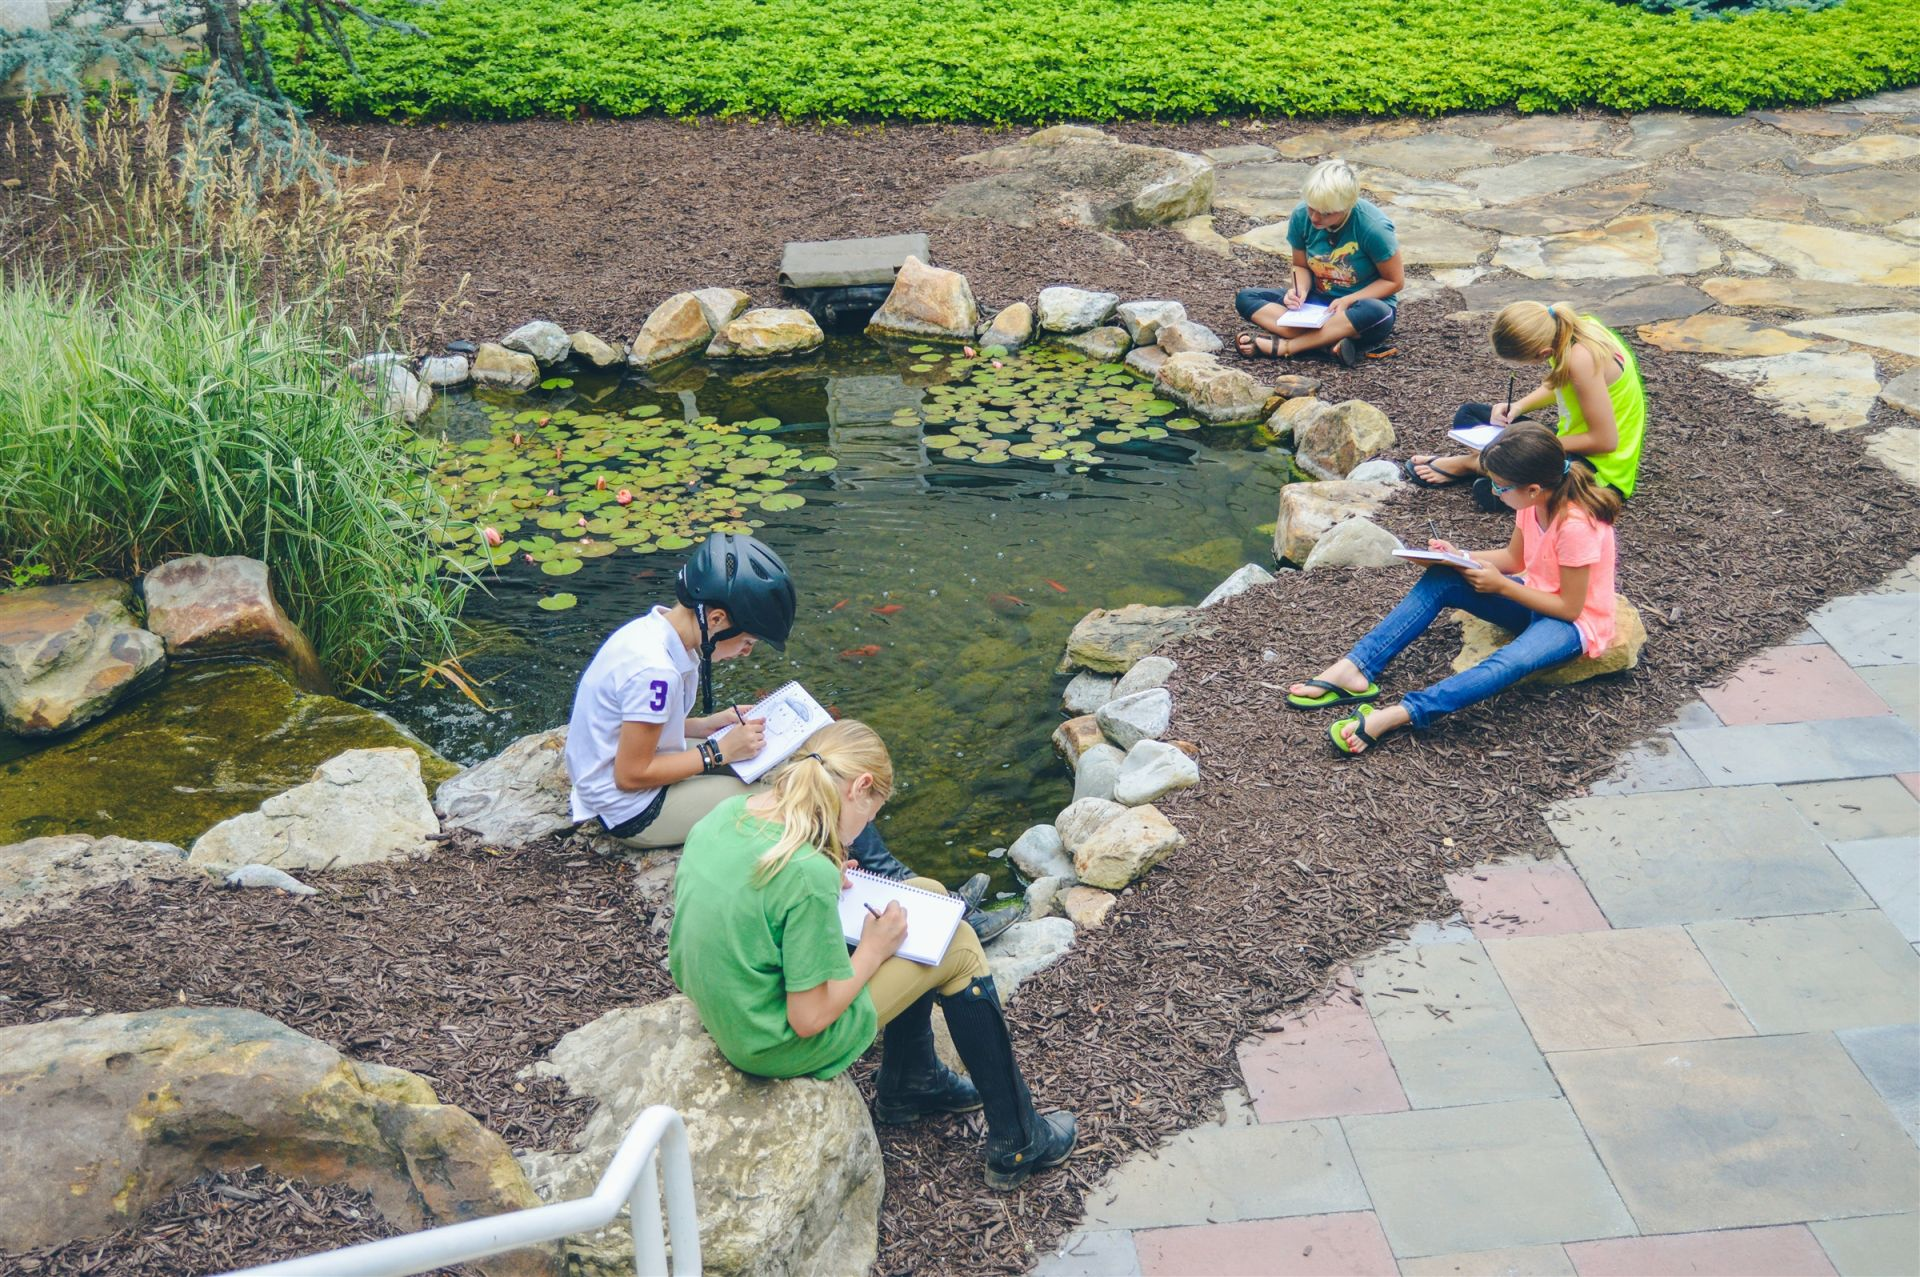 The campus koi pond provides a peaceful spot for campers to express theirselves through writing and drawing.